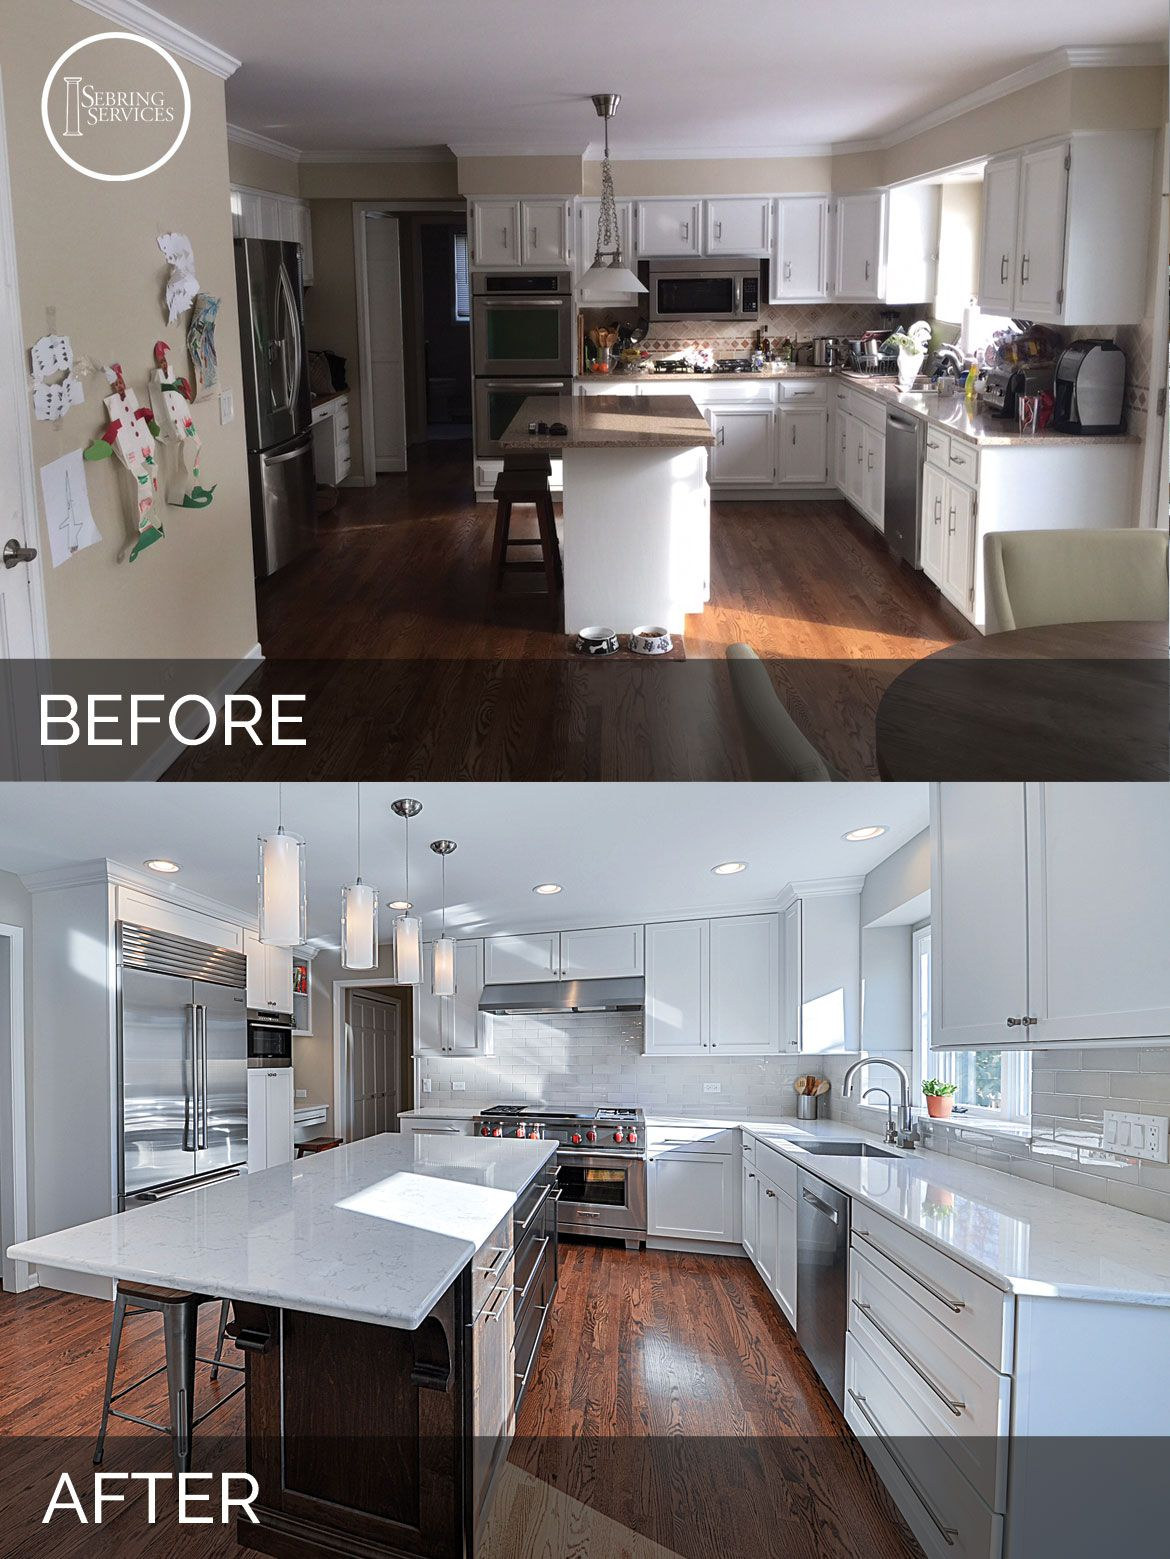 Derek   Christine s Kitchen Before   After Pictures   Remodeling     Before After Kitchen Remodeling   Sebring Services